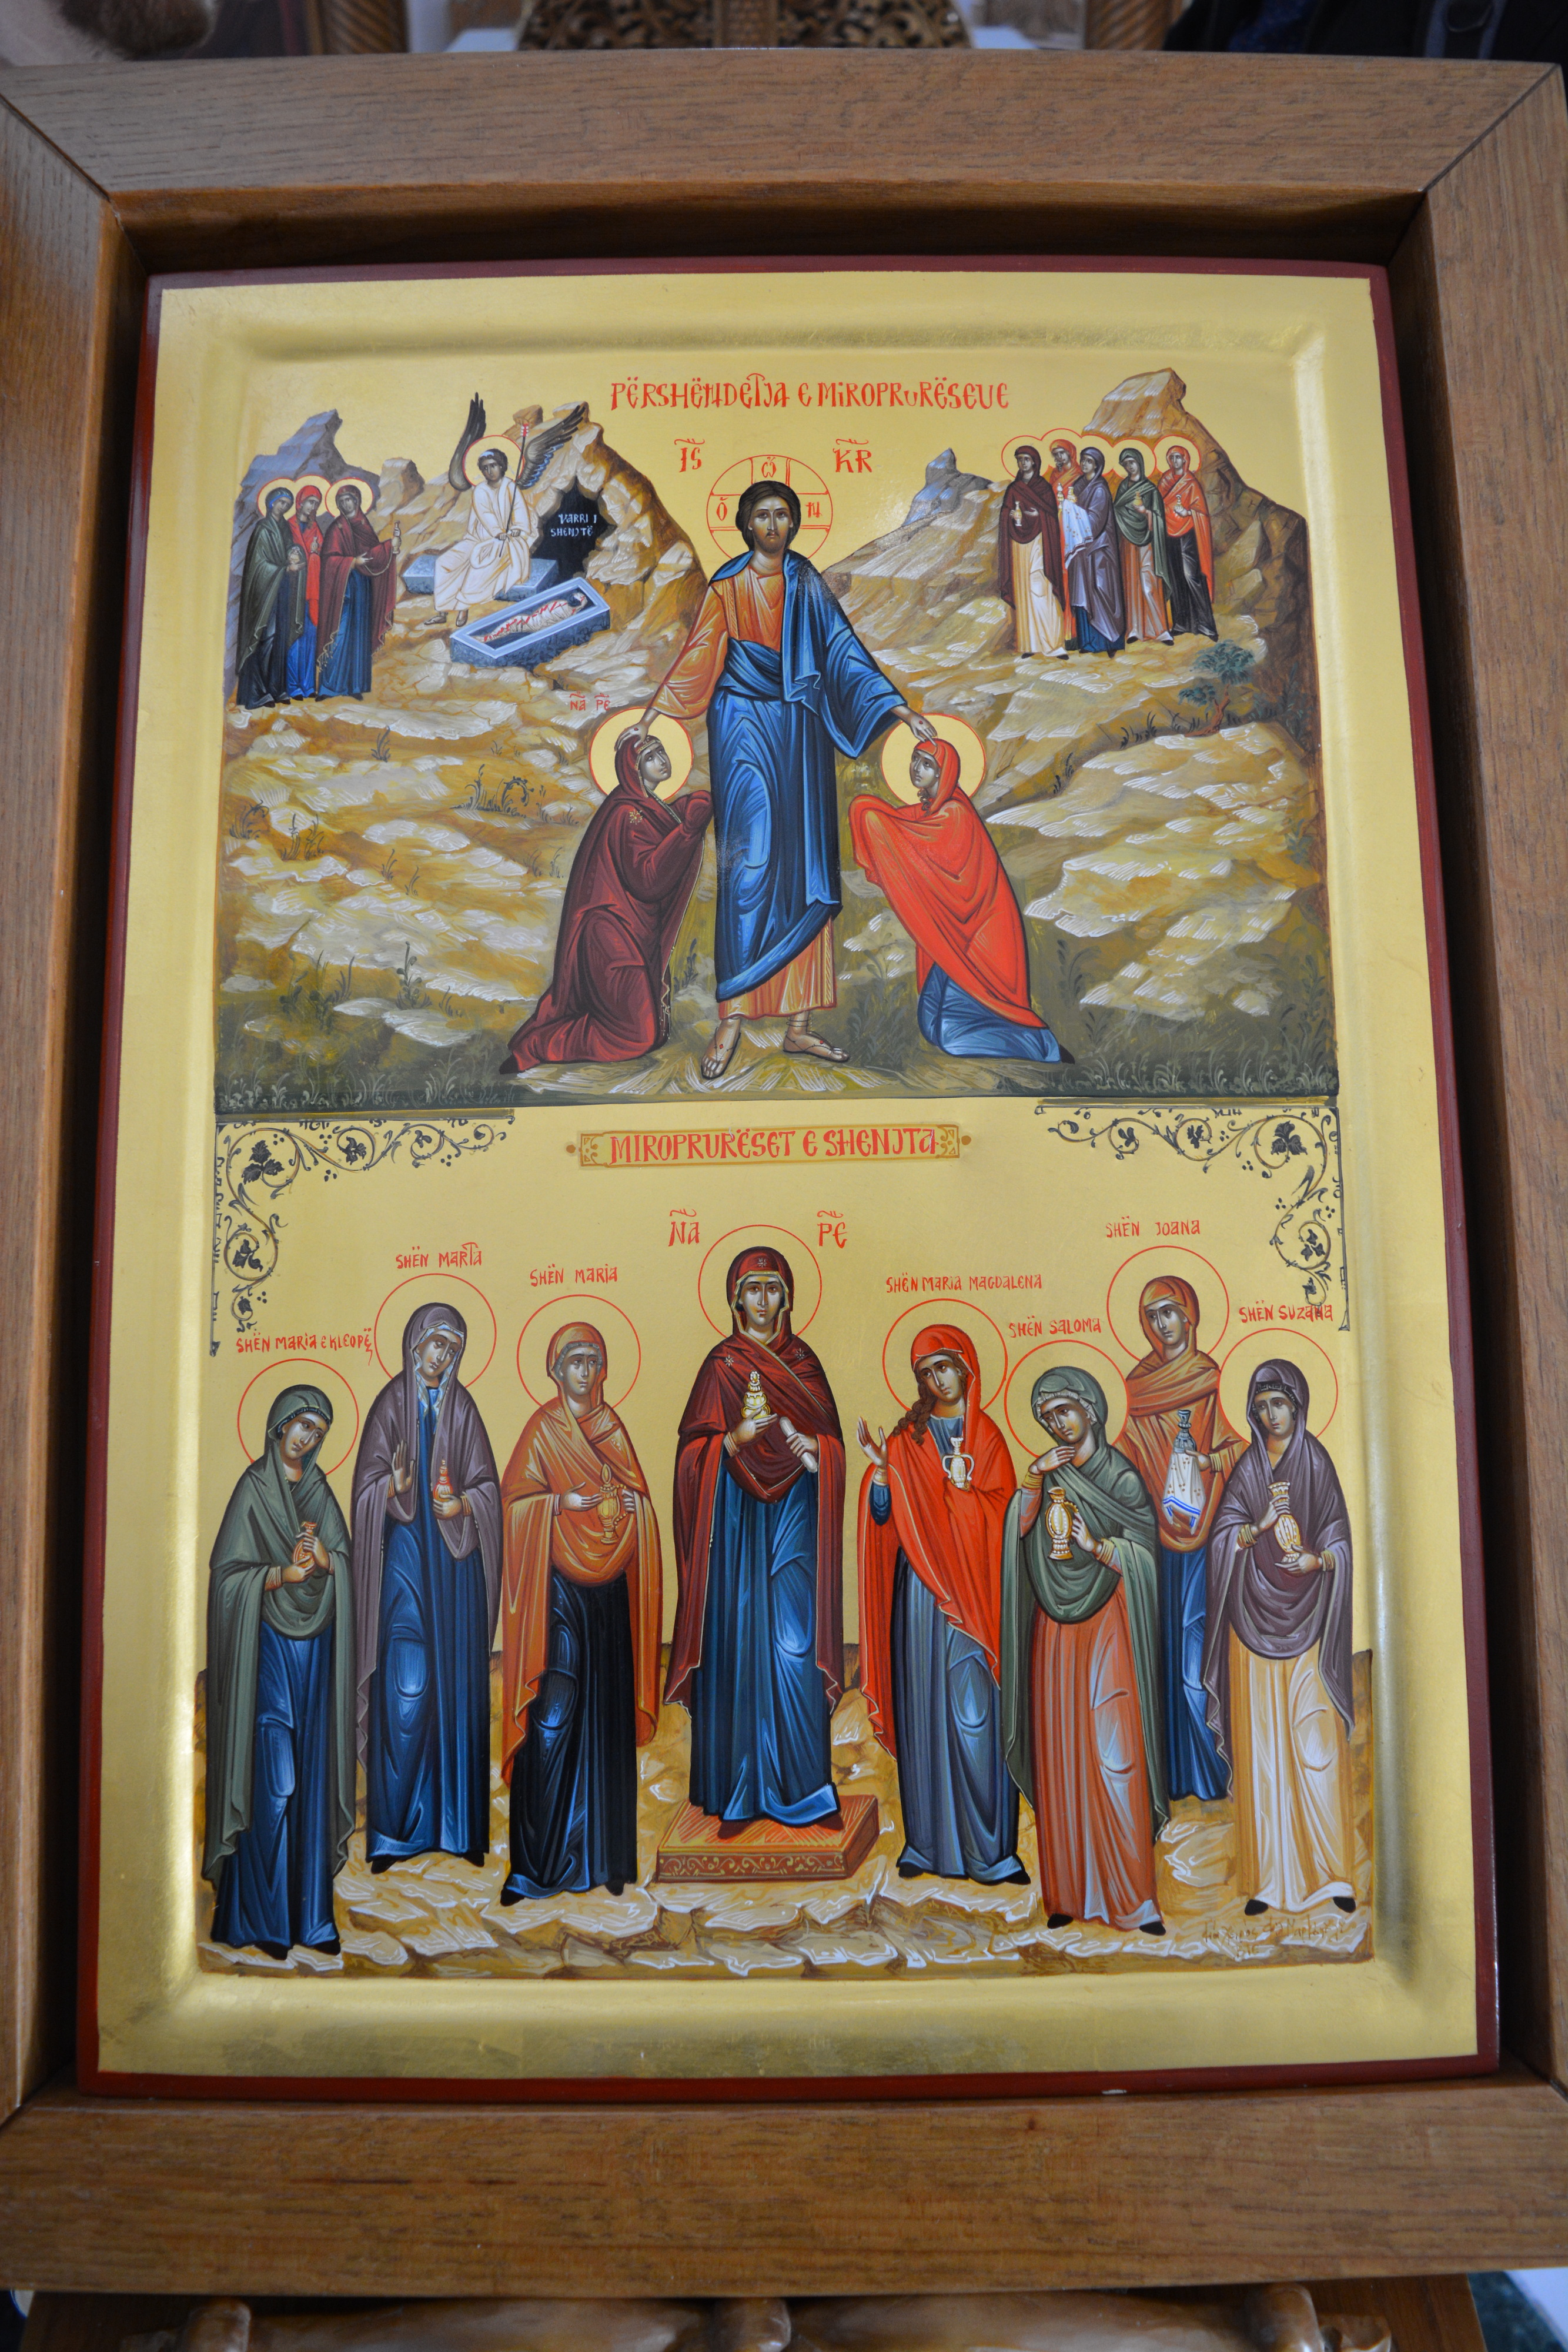 The icon of the holy Myrrhbearers